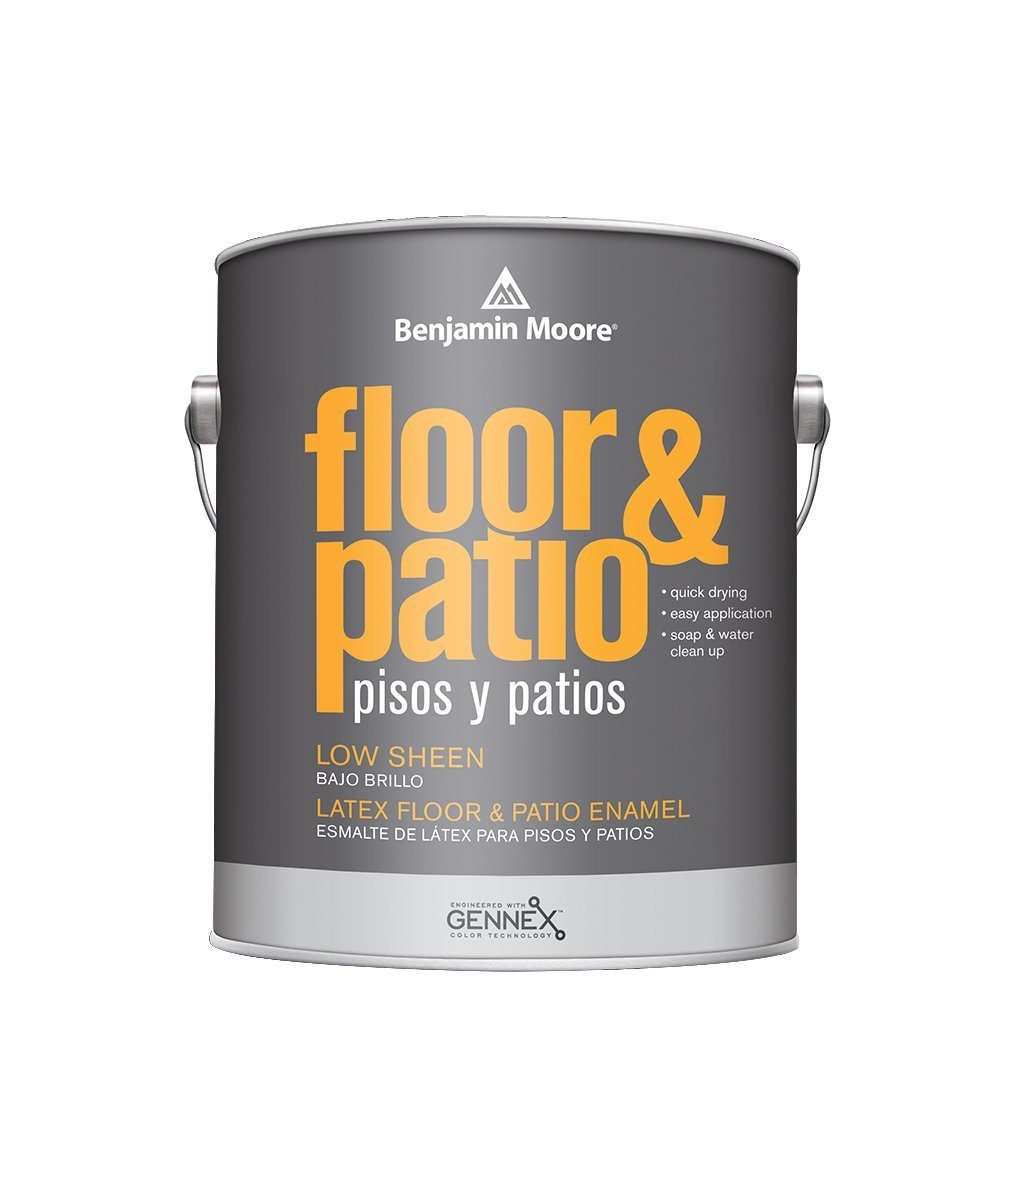 Benjamin Moore floor and patio low sheen Interior Paint available at Regal Paint Centers.